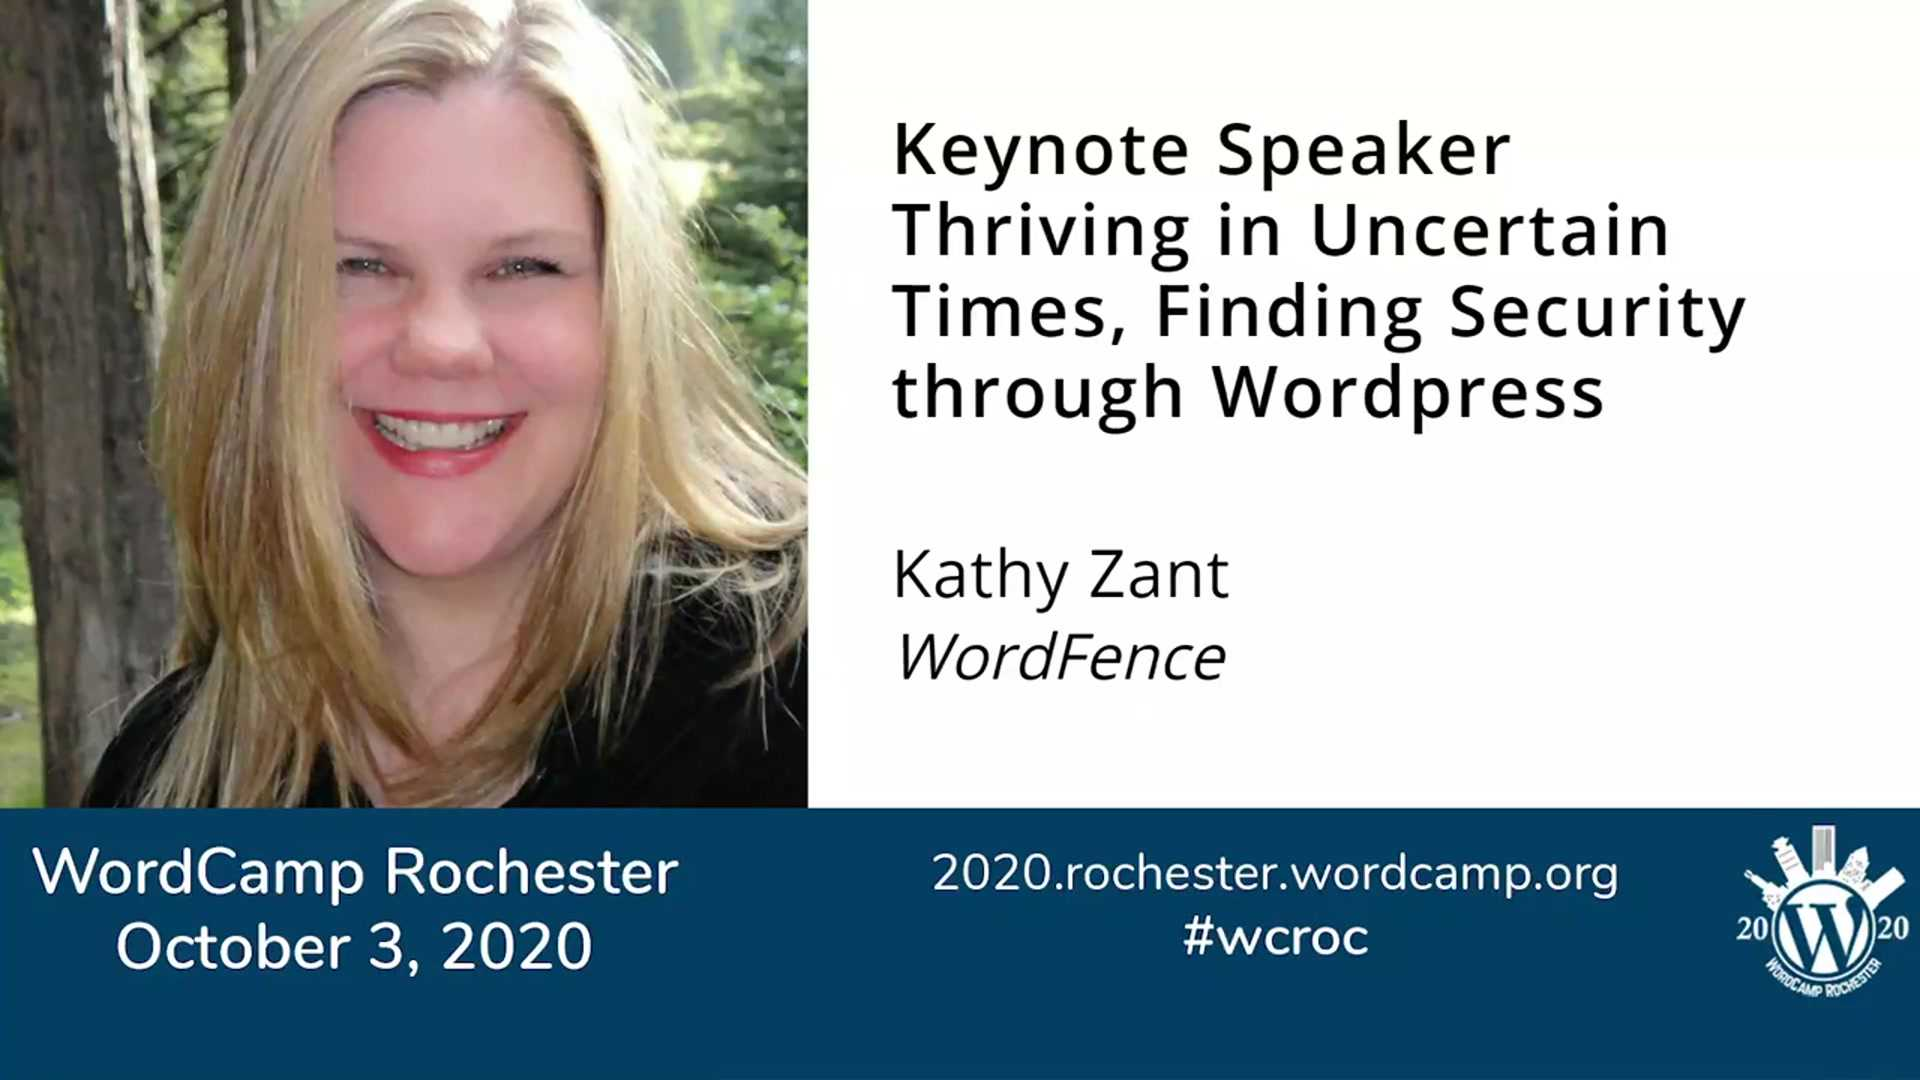 Kathy Zant: Thriving in Uncertain Times, Finding Security through WordPress